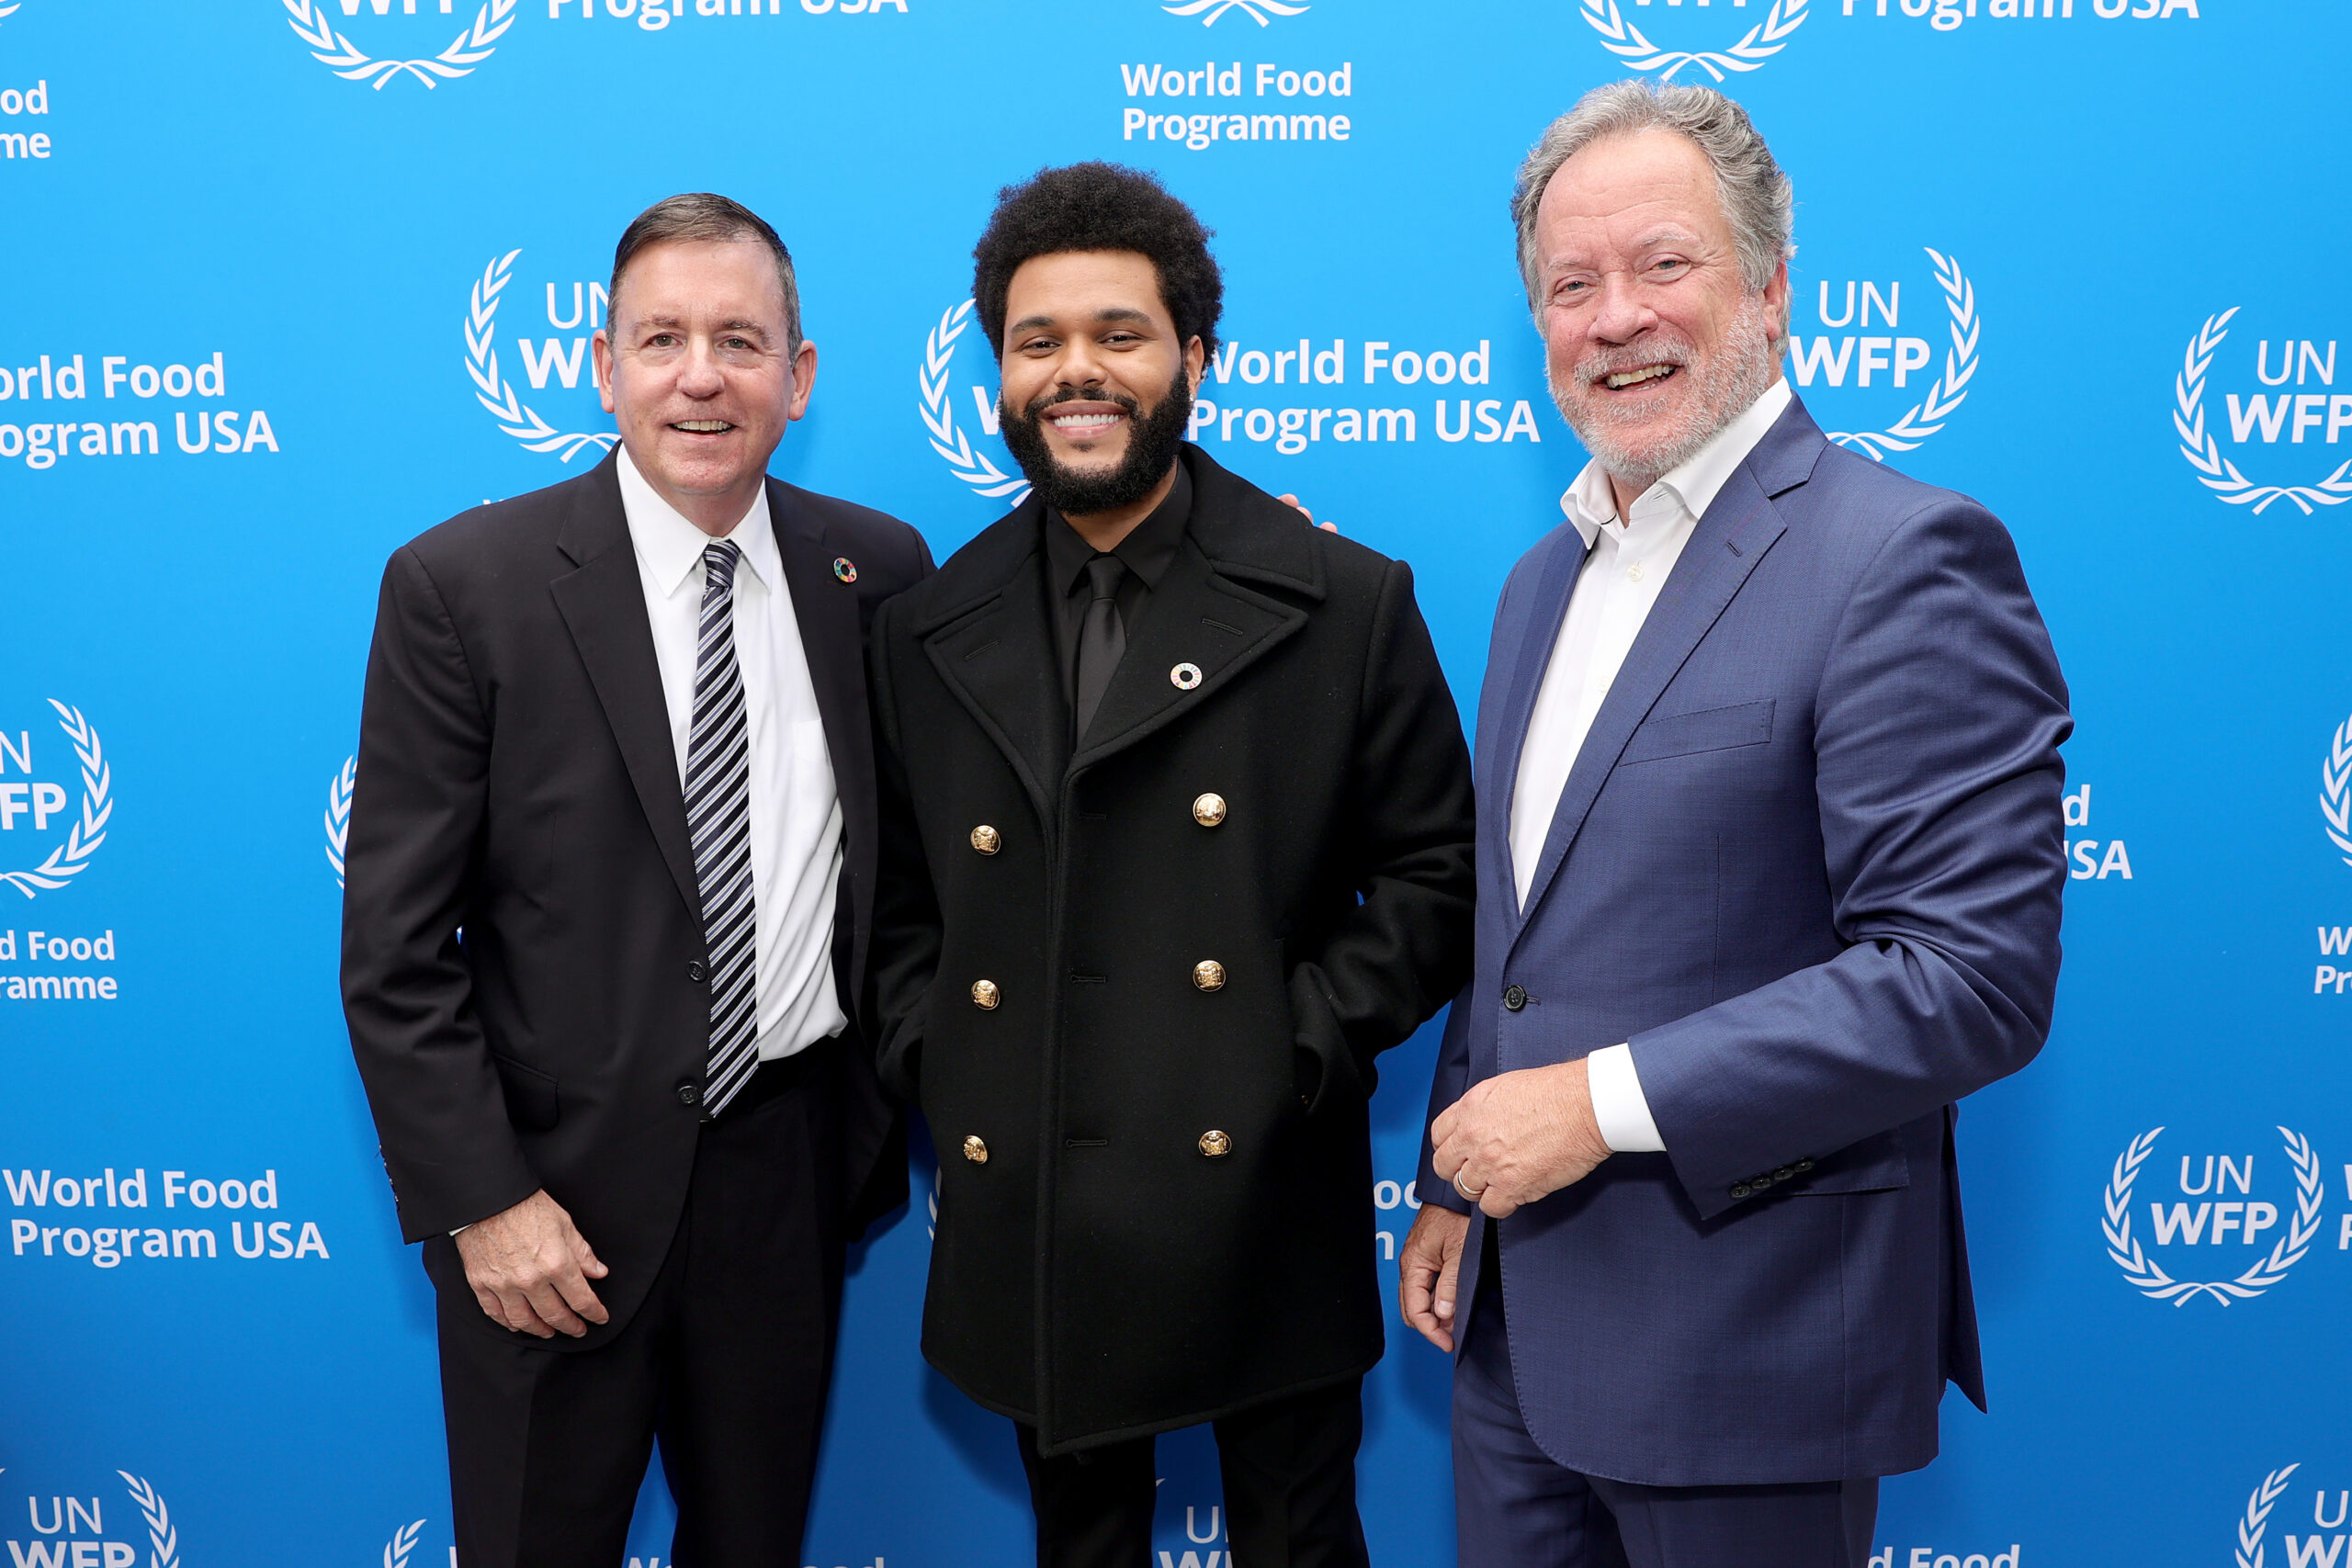 the weeknd joins wfp